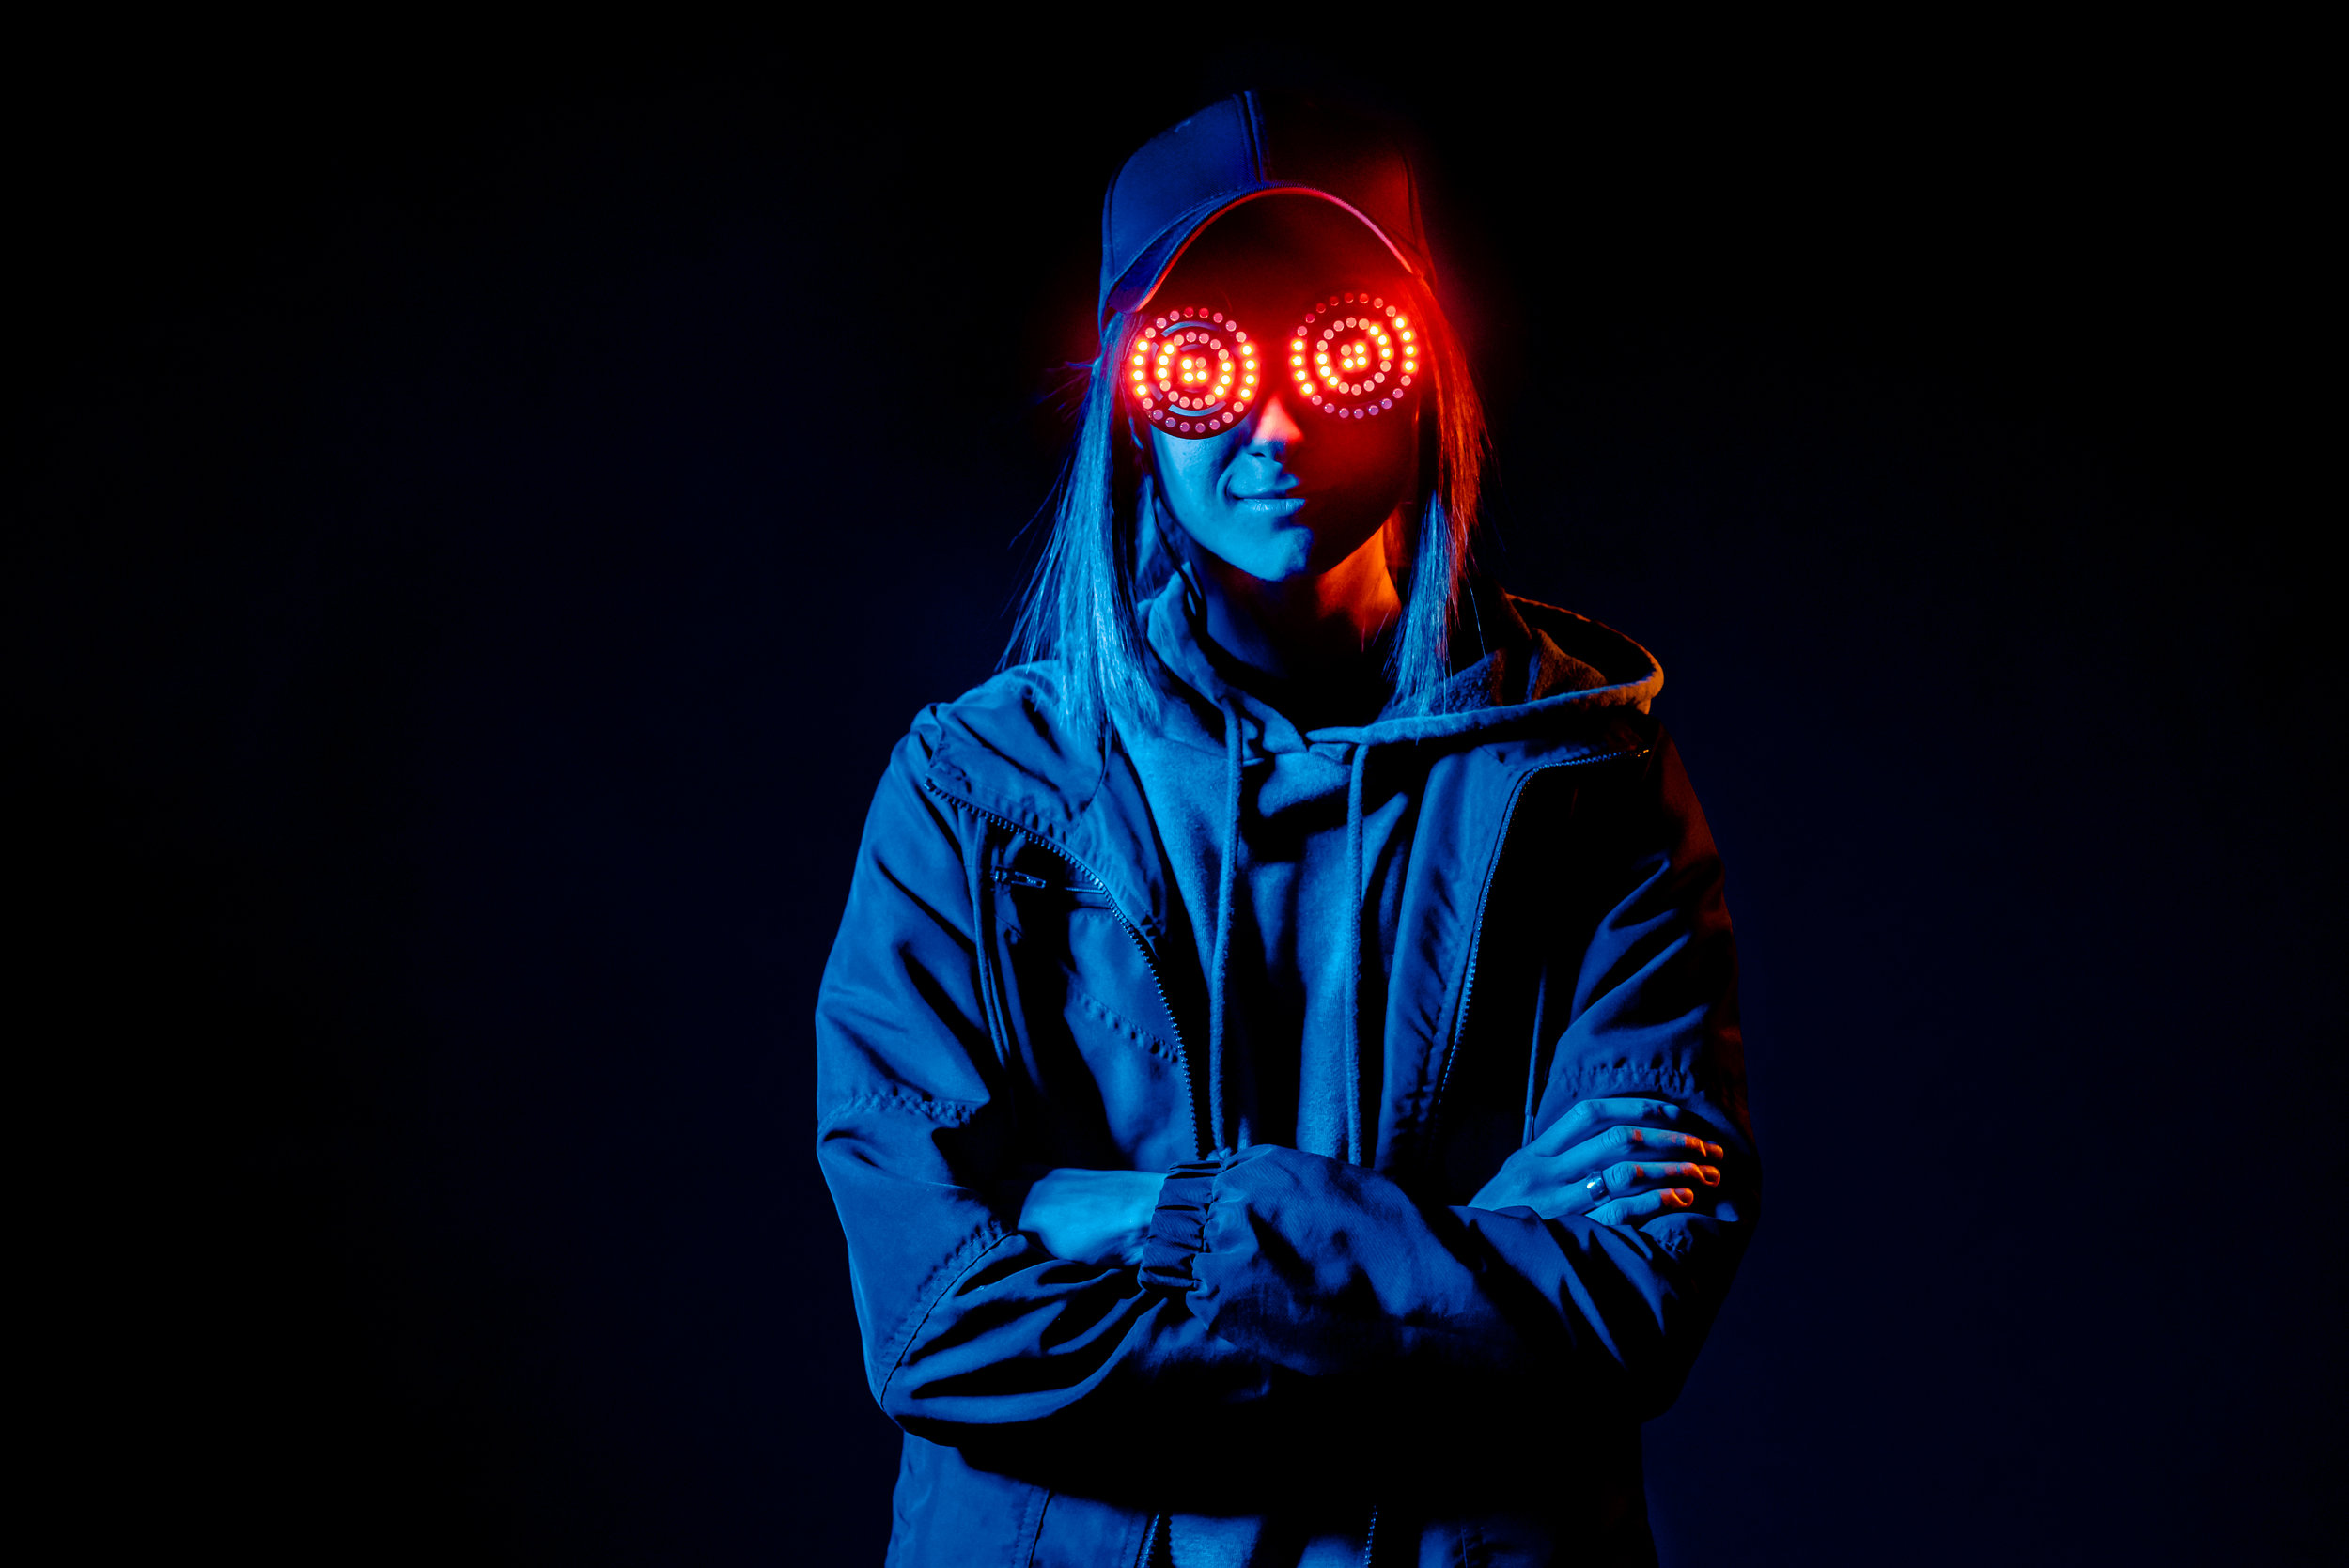 REZZ - Artist Presale RegistrationSign up now through May 29th at 9:30am PT using the link below. You'll receive an alert 10 minutes before tickets go on sale. Due to the limited quantity of presale tickets, they will be available on a first-come first-served basis.